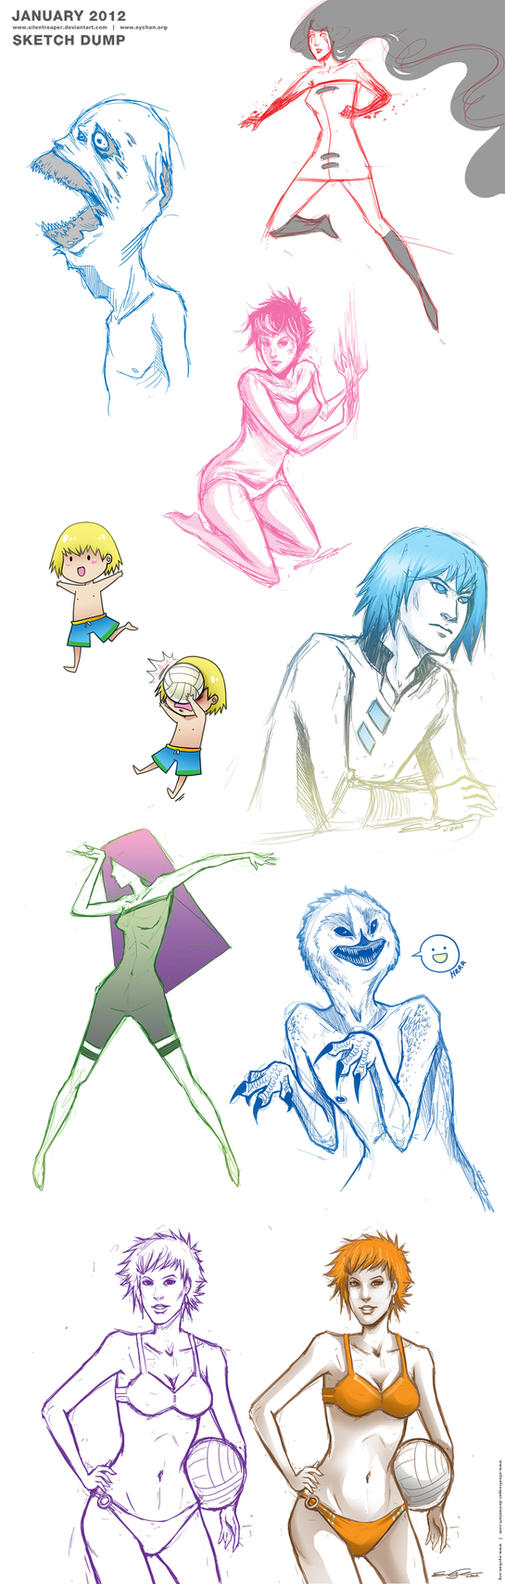 JAN2012  - Sketch Dump by SilentReaper